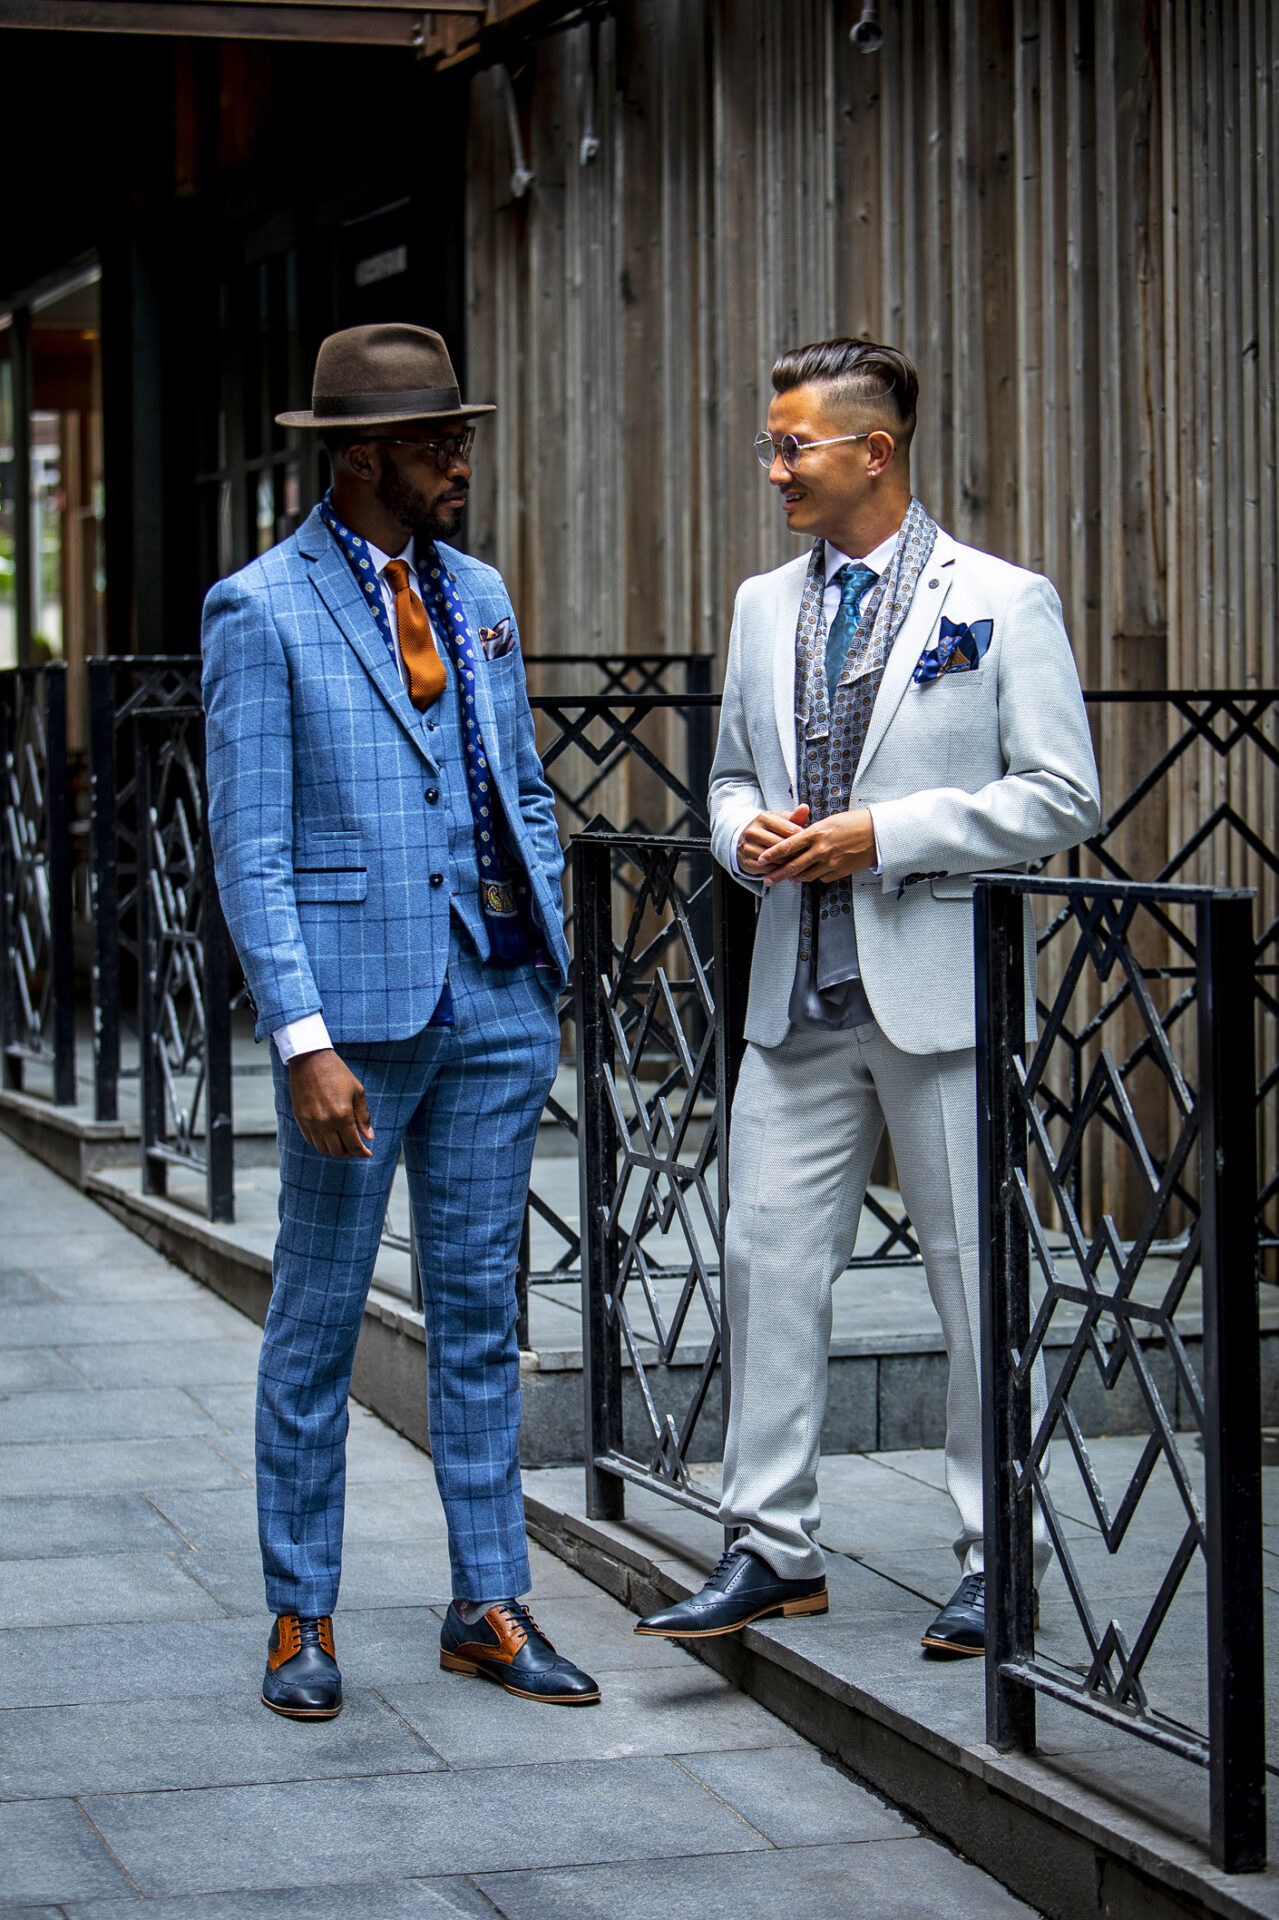 menswear-and-suits-fashion-in-manchester-and-the-northwest